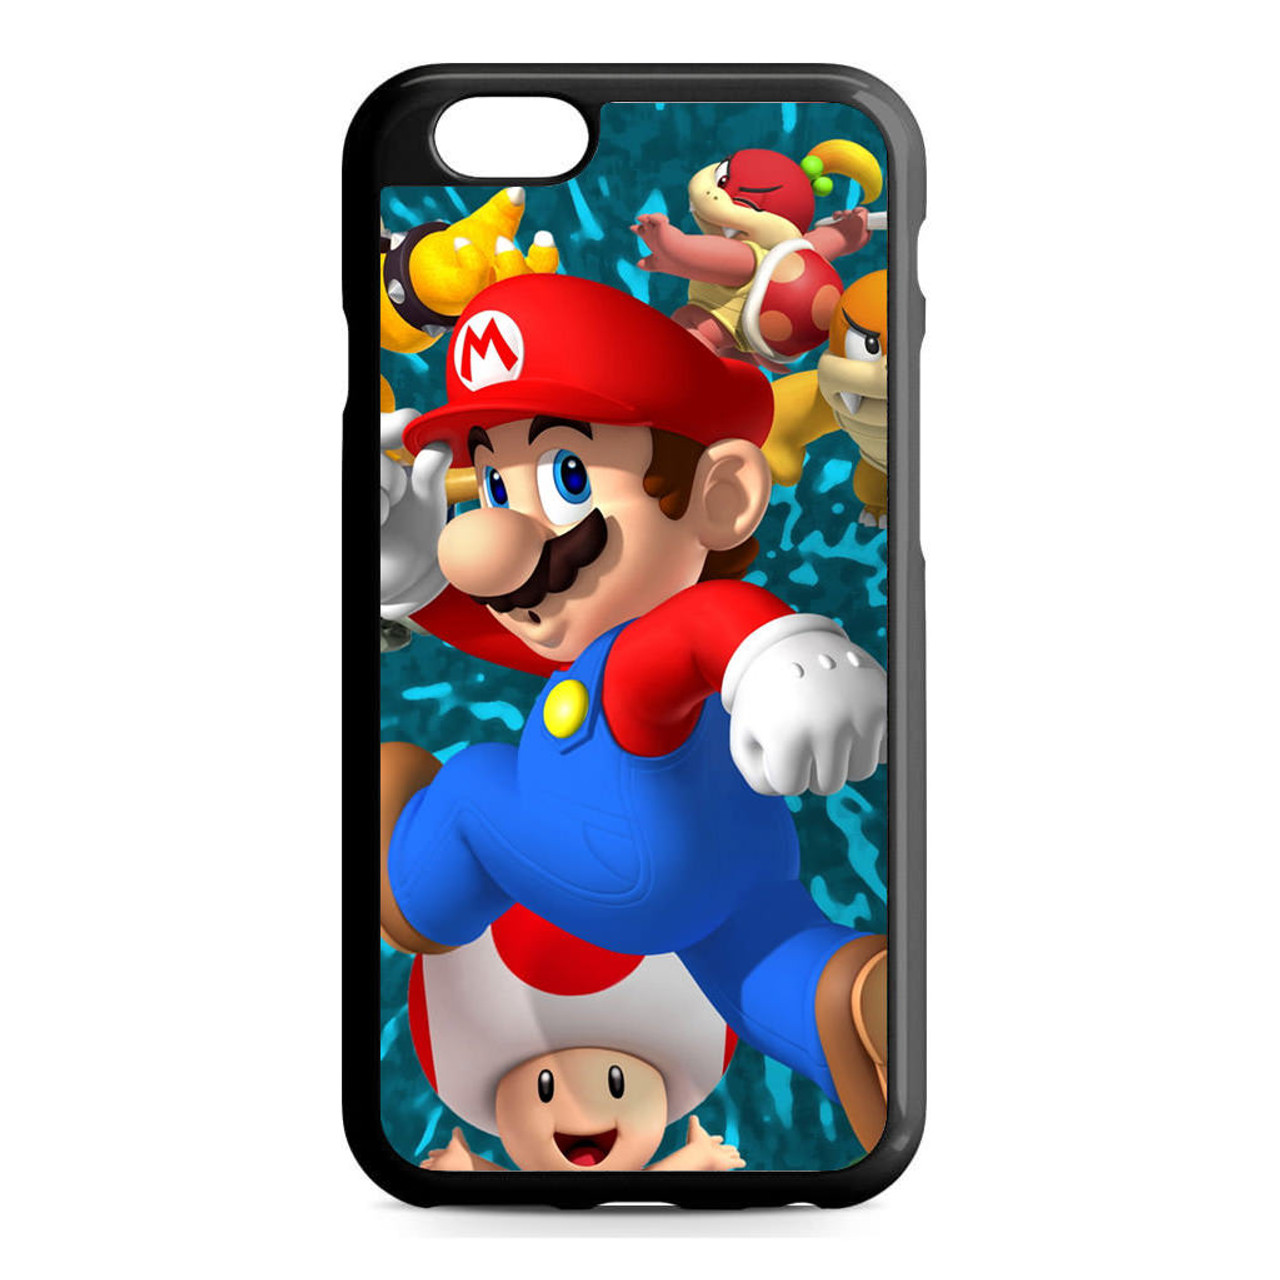 mario iphone 6s case